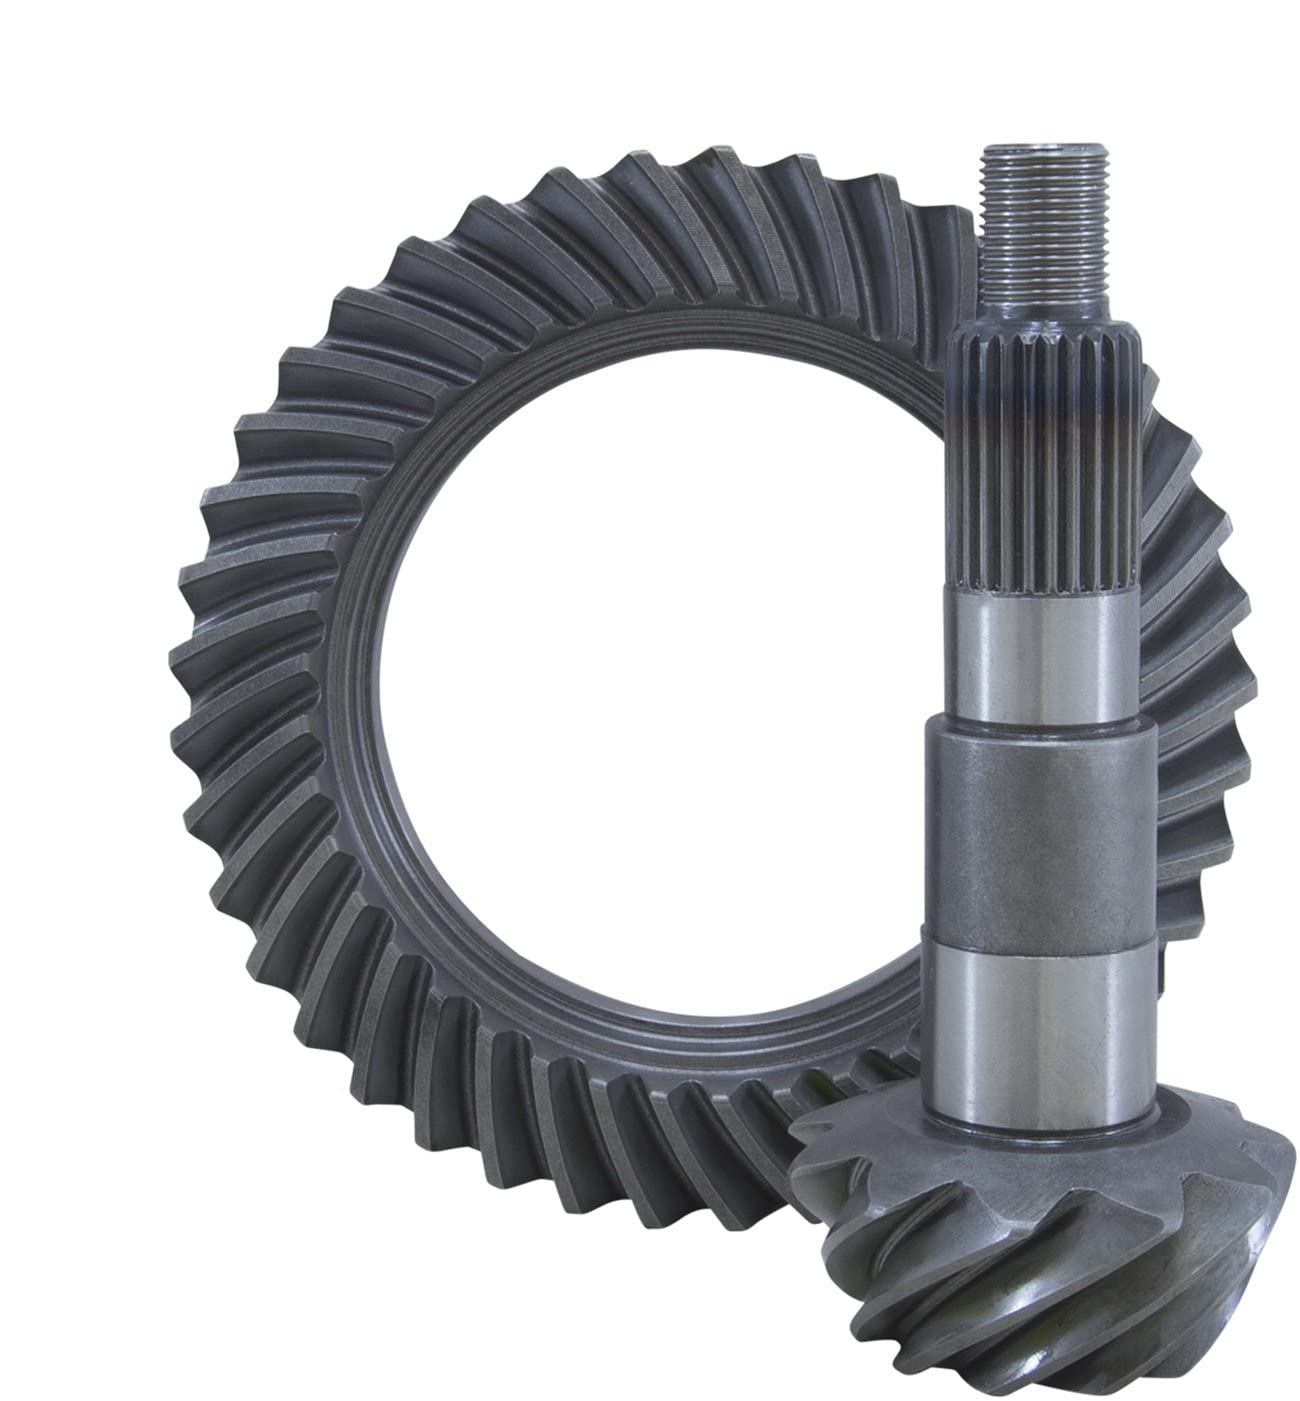 USA Standard New Shipping Free Gear ZG Ring Replacement In stock Pinion D30R-456R